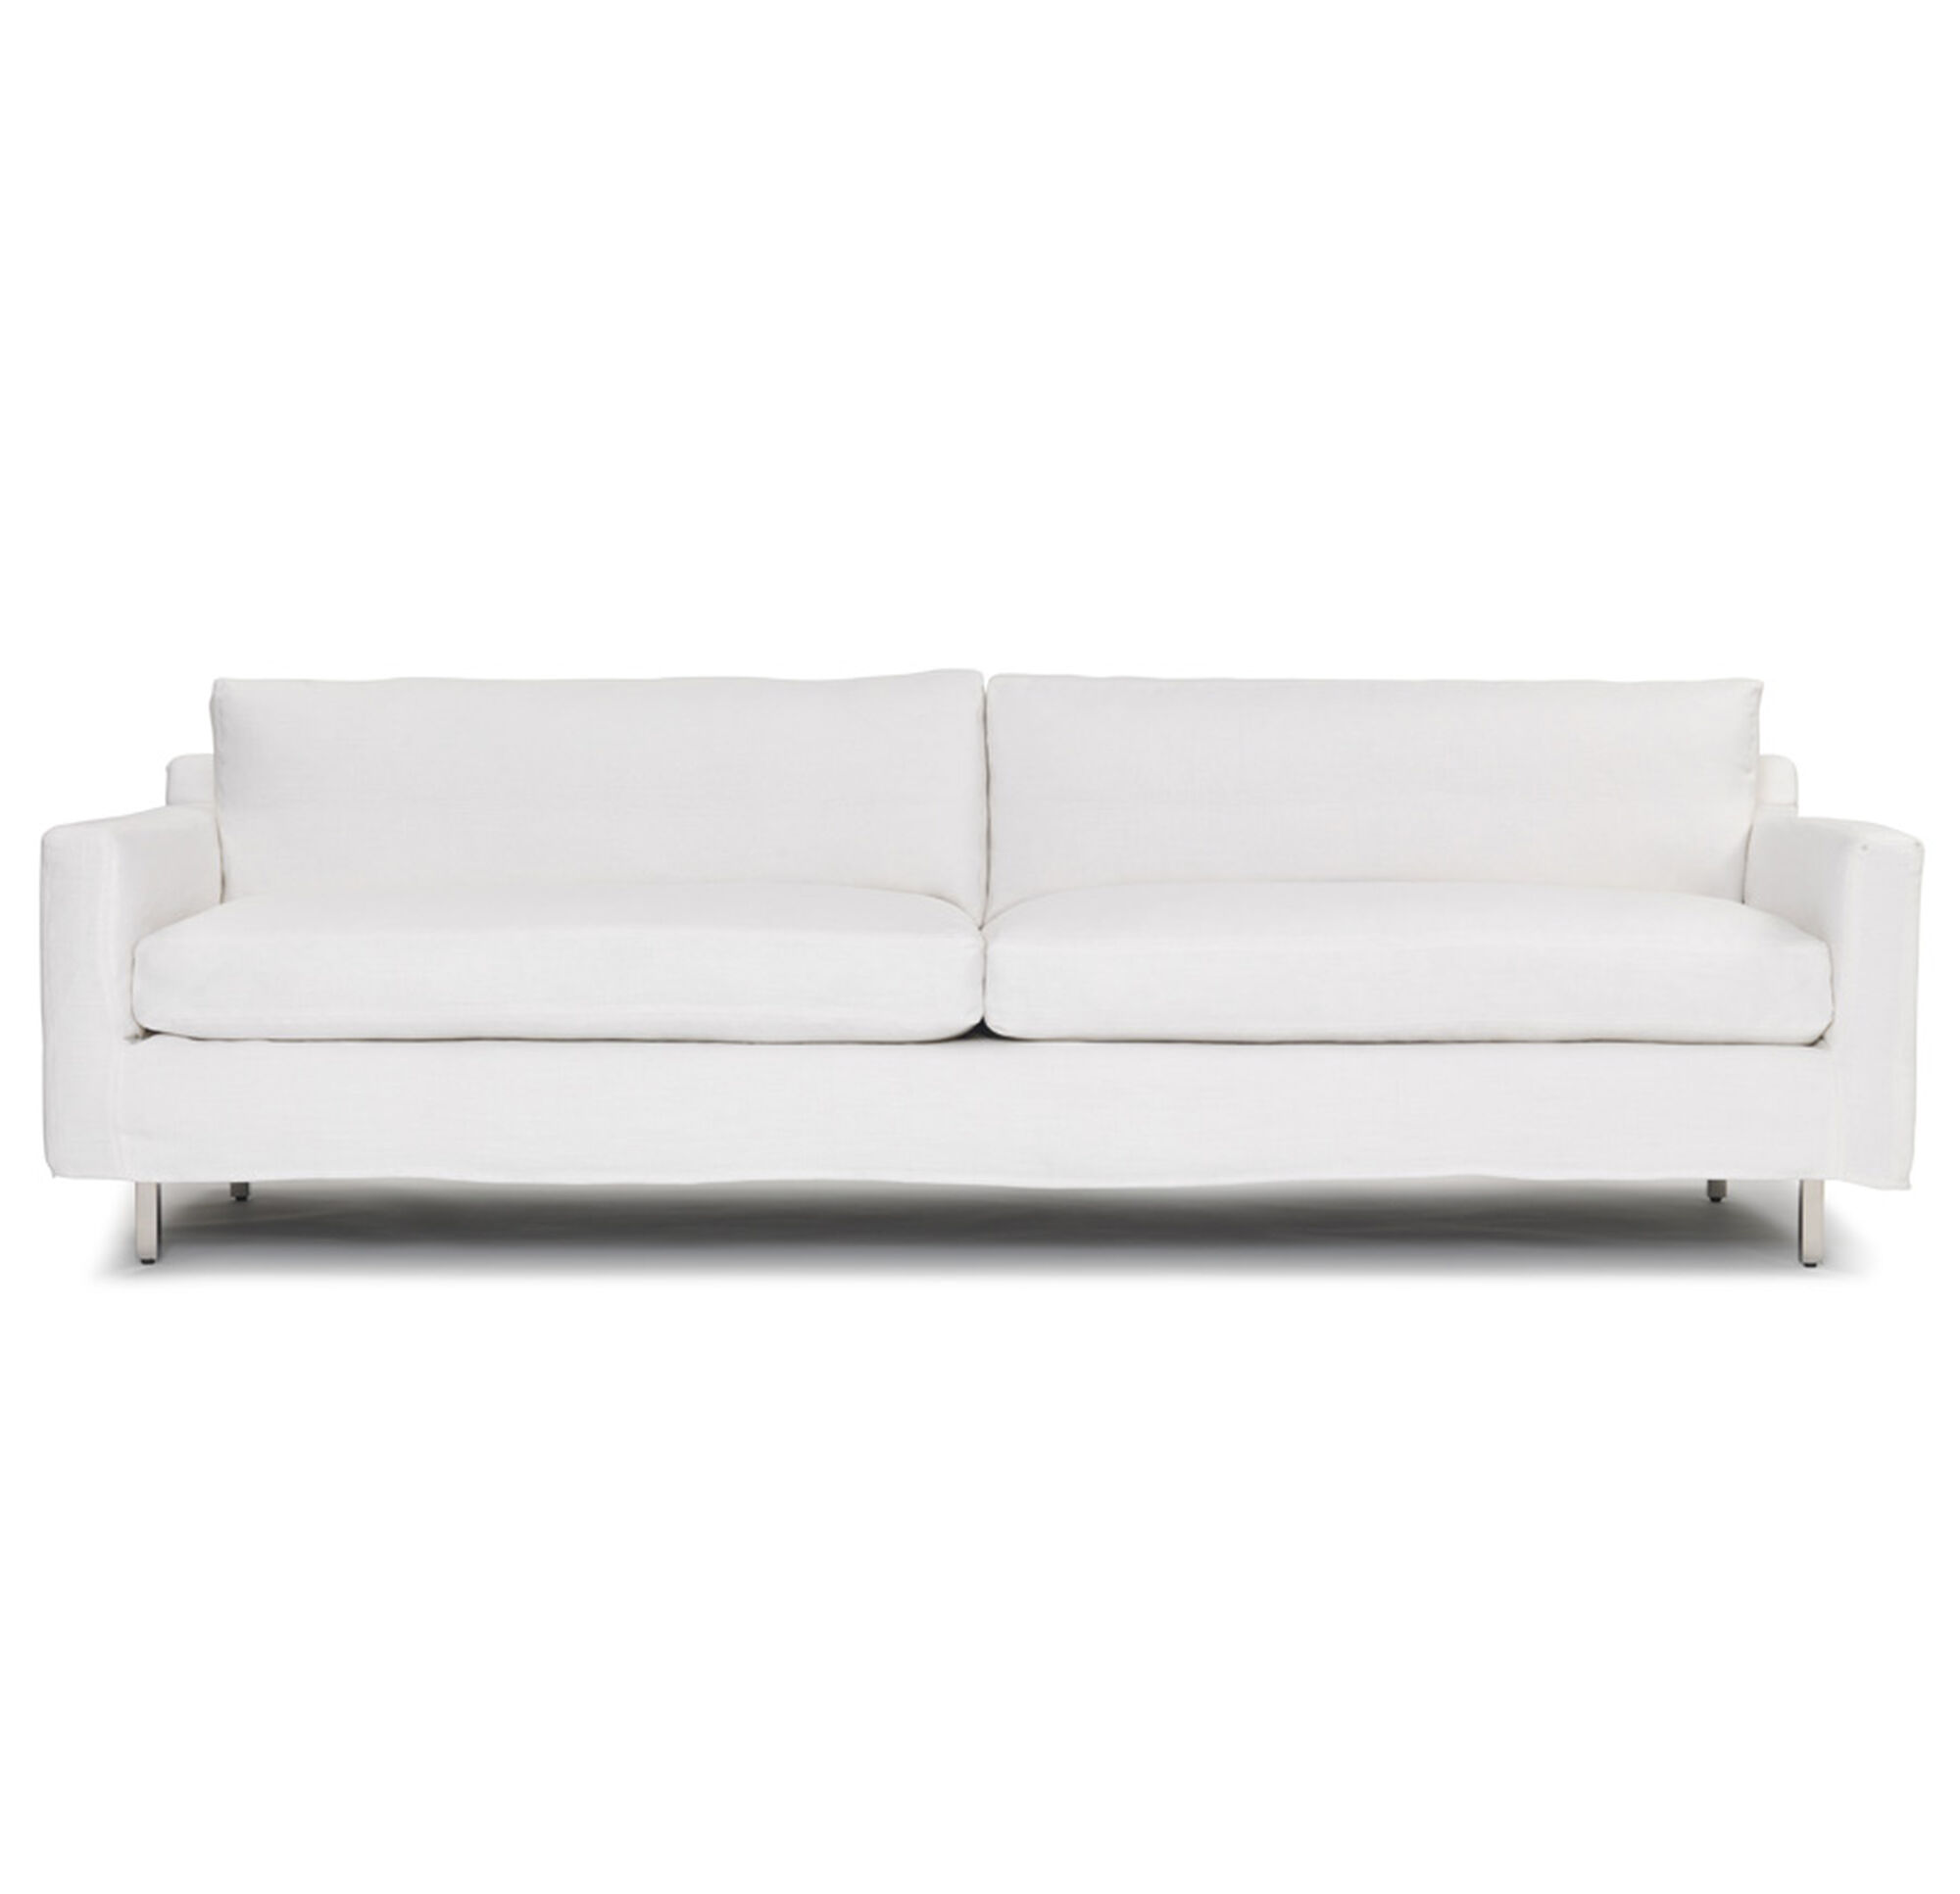 seating slipcover side sofas camille sofa silver louis